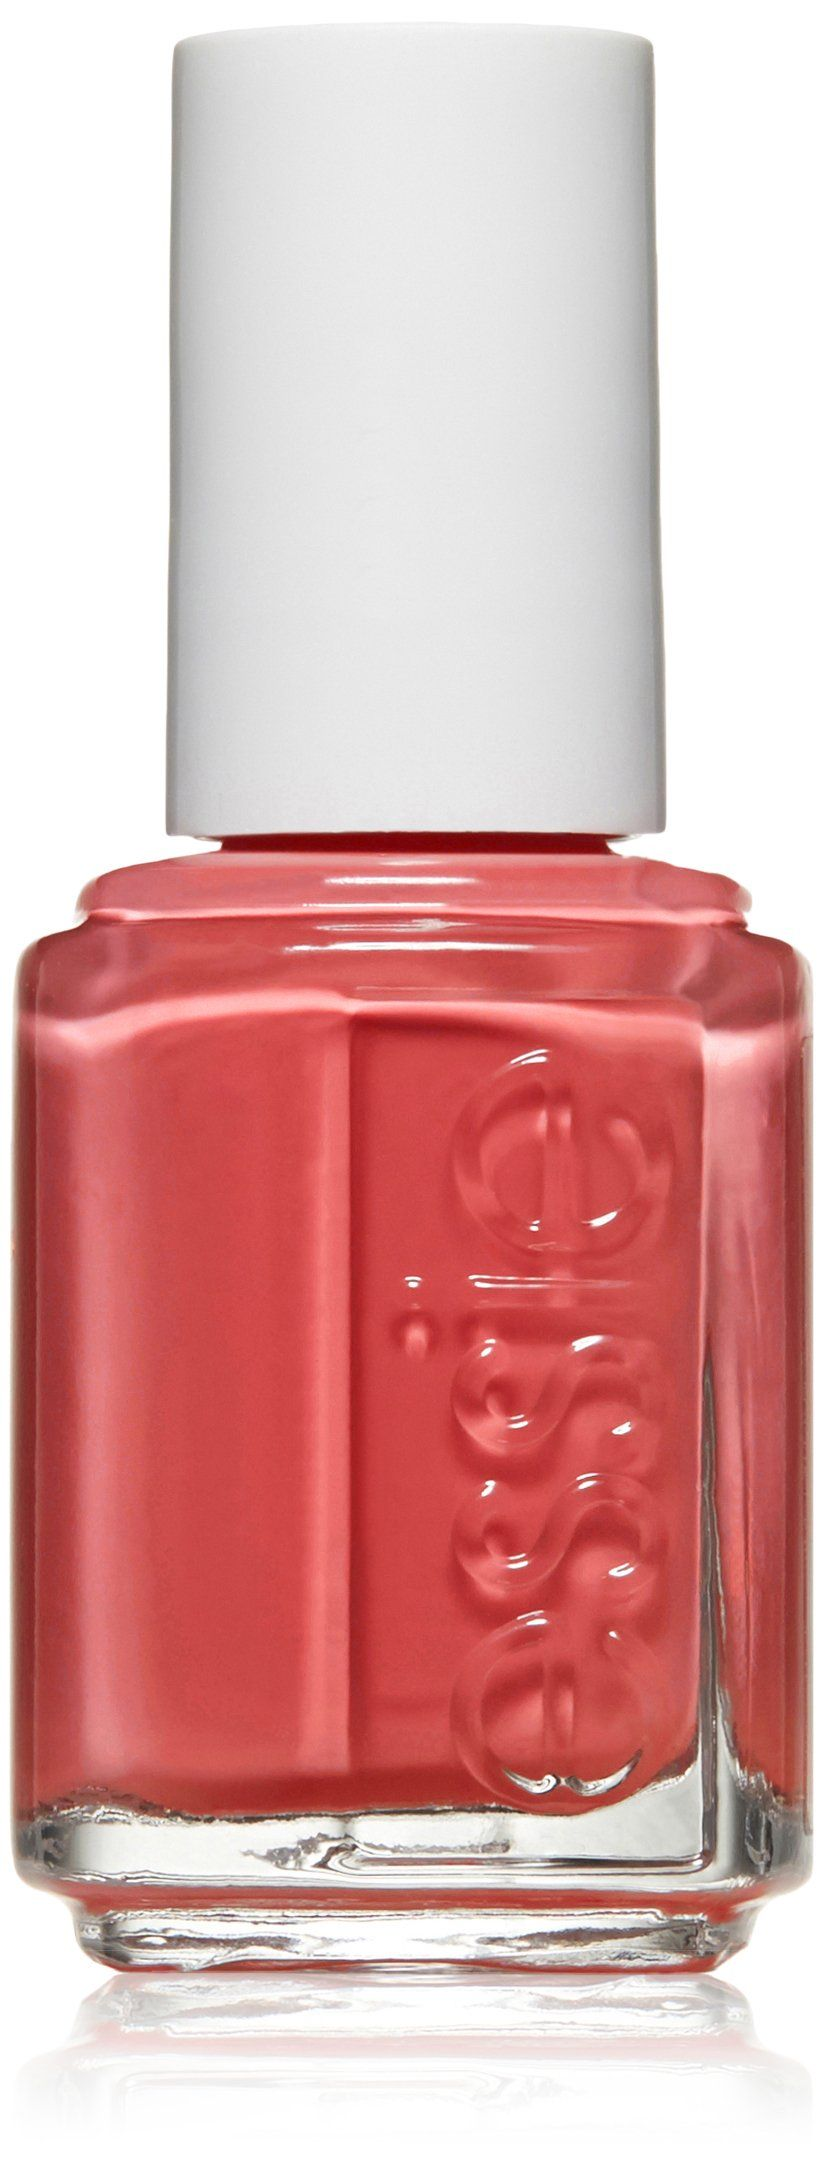 essie nail polish, cute as a button, 0.46 fl. oz. DBP, Toluene, and ...